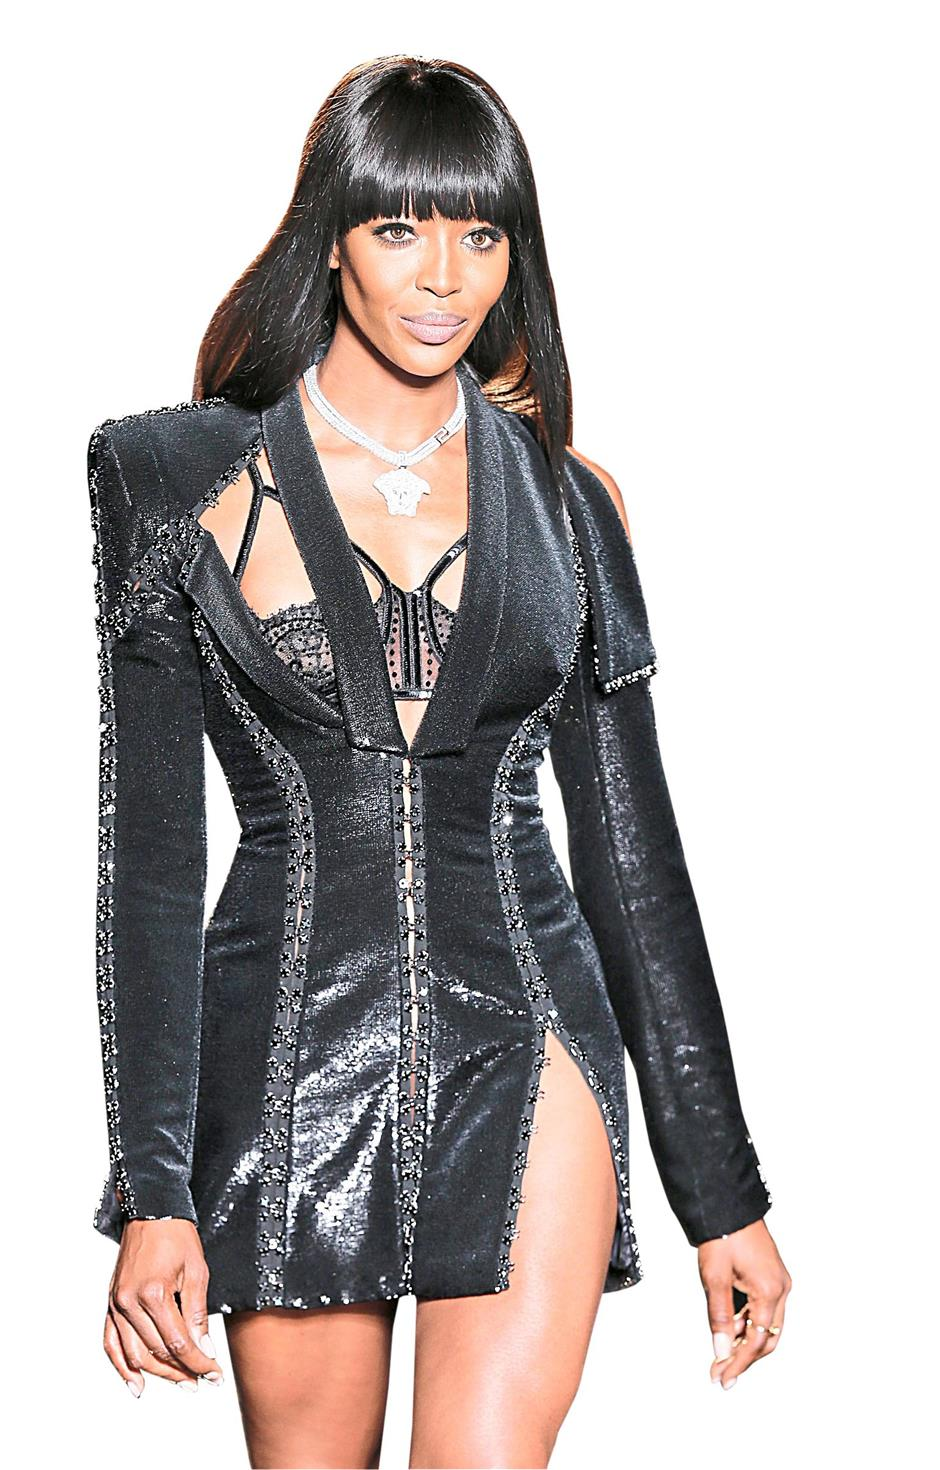 Naomi Campbell walking the runway for the Versace Haute Couture Fall/Winter 2013/14 collection.